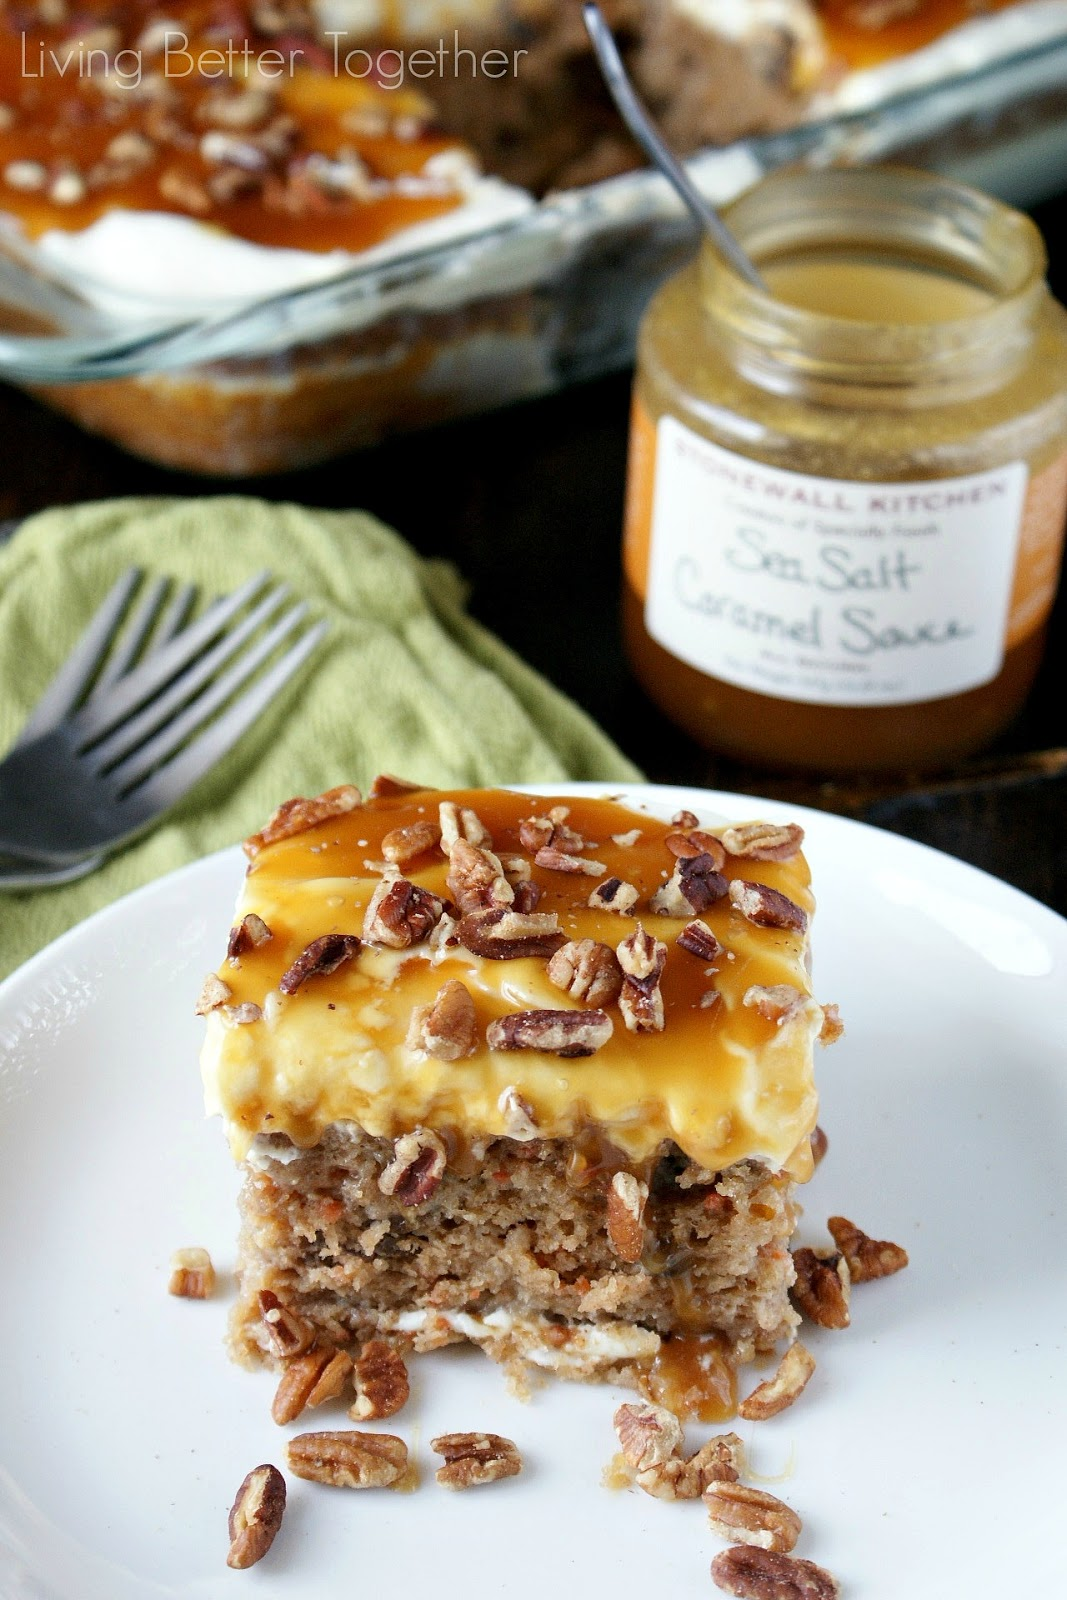 Sea Salt Caramel Carrot Cake Poke Cake www.livingbettertogether.com